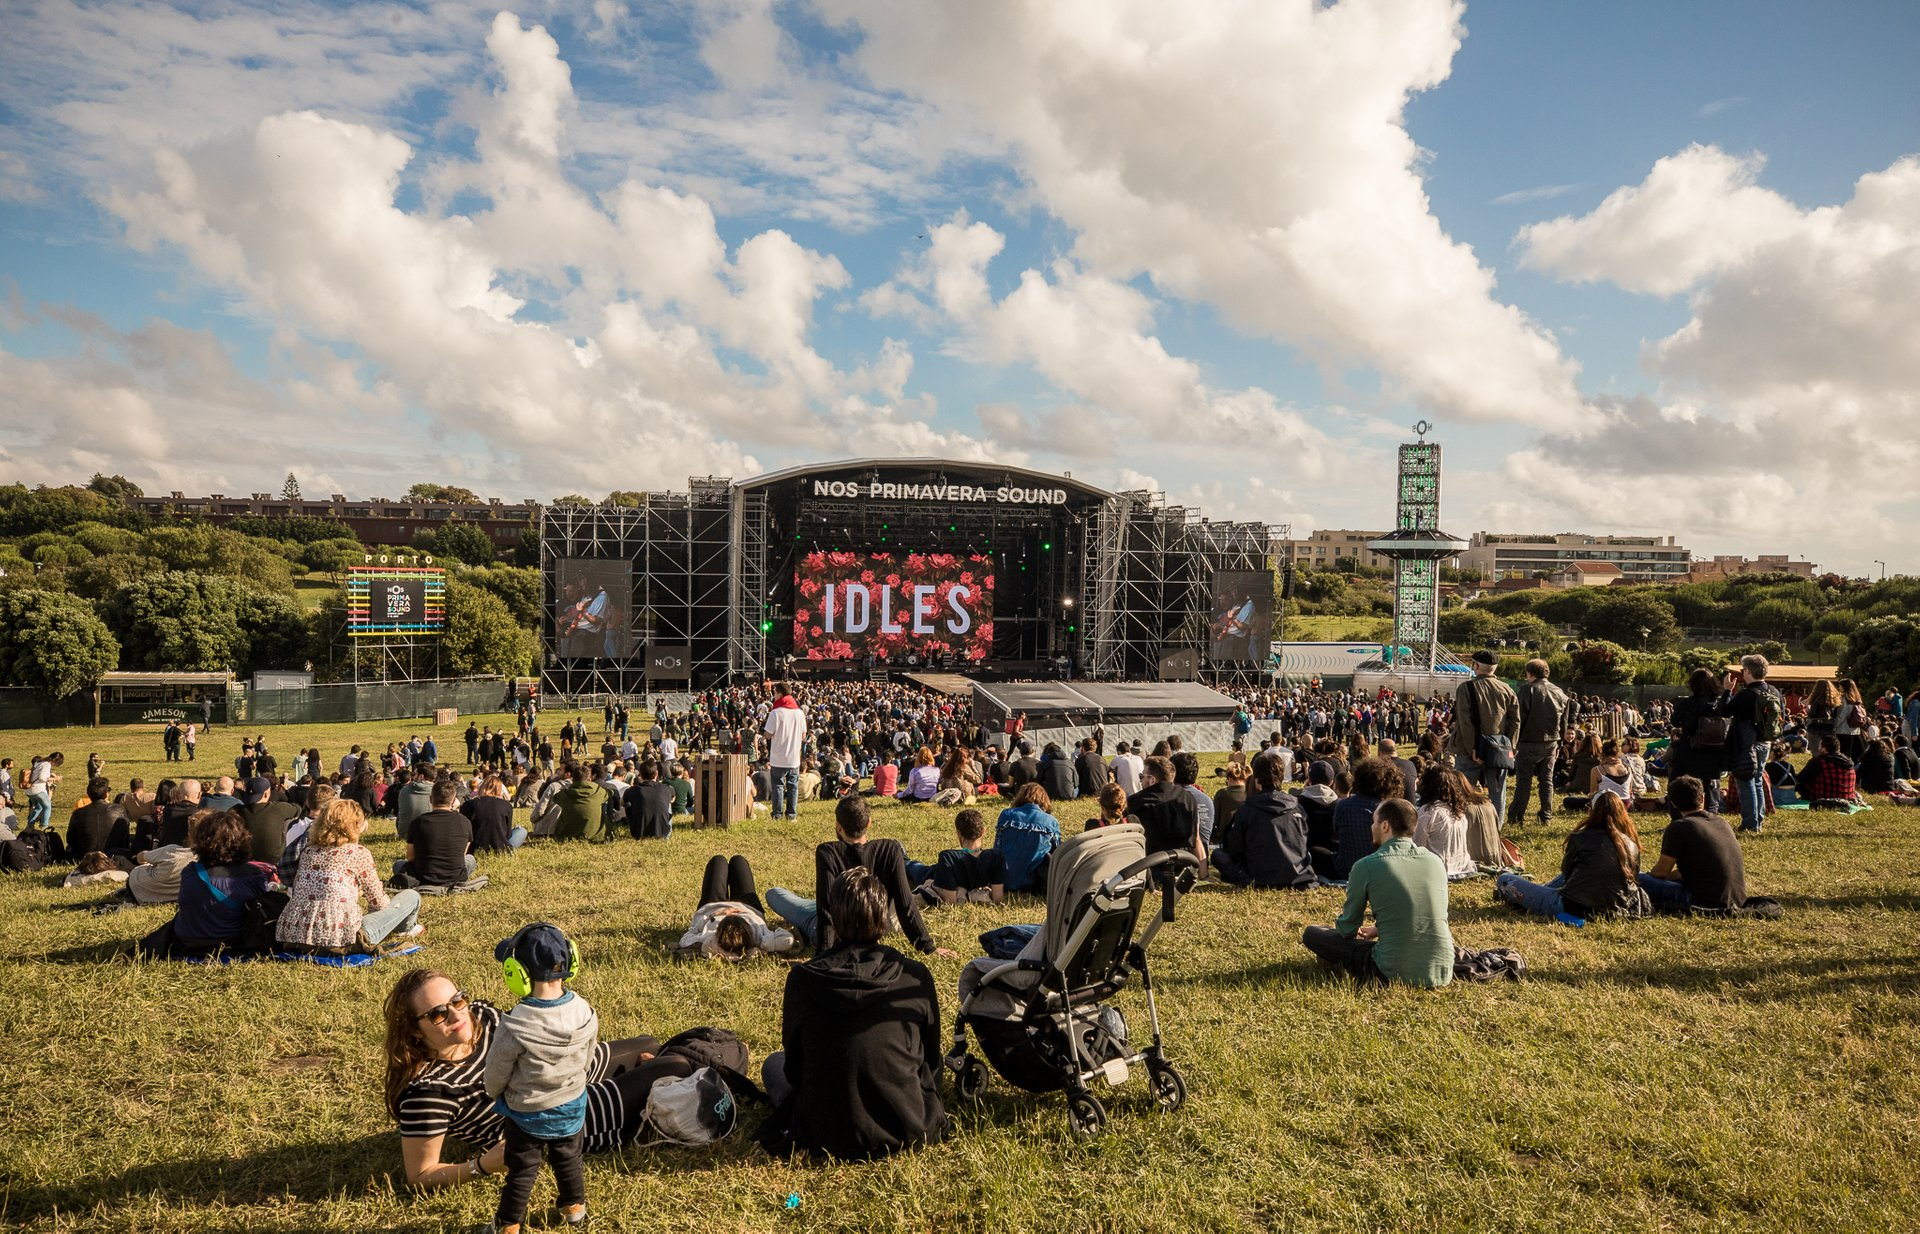 Best time for NOS Primavera Sound in Porto 2020